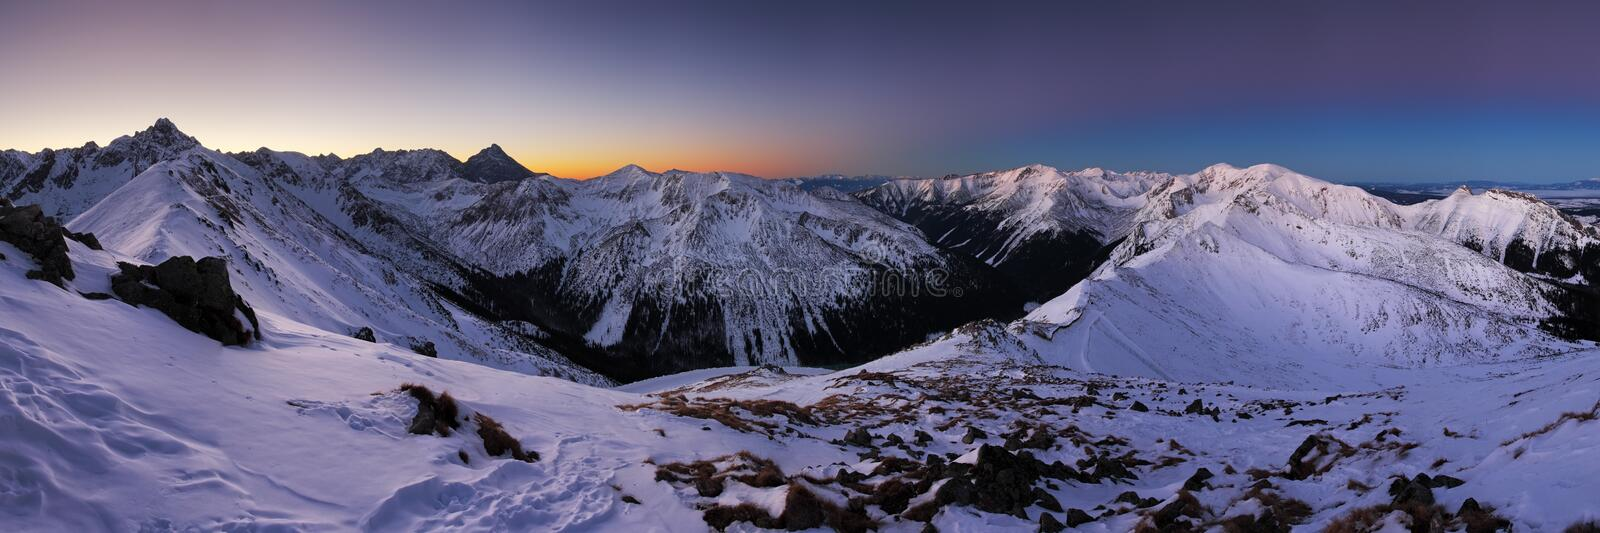 Winter mountain in Poland, Kasprowy. Winter mountain in Poland from Tatras - Kasprowy Wierch stock photos